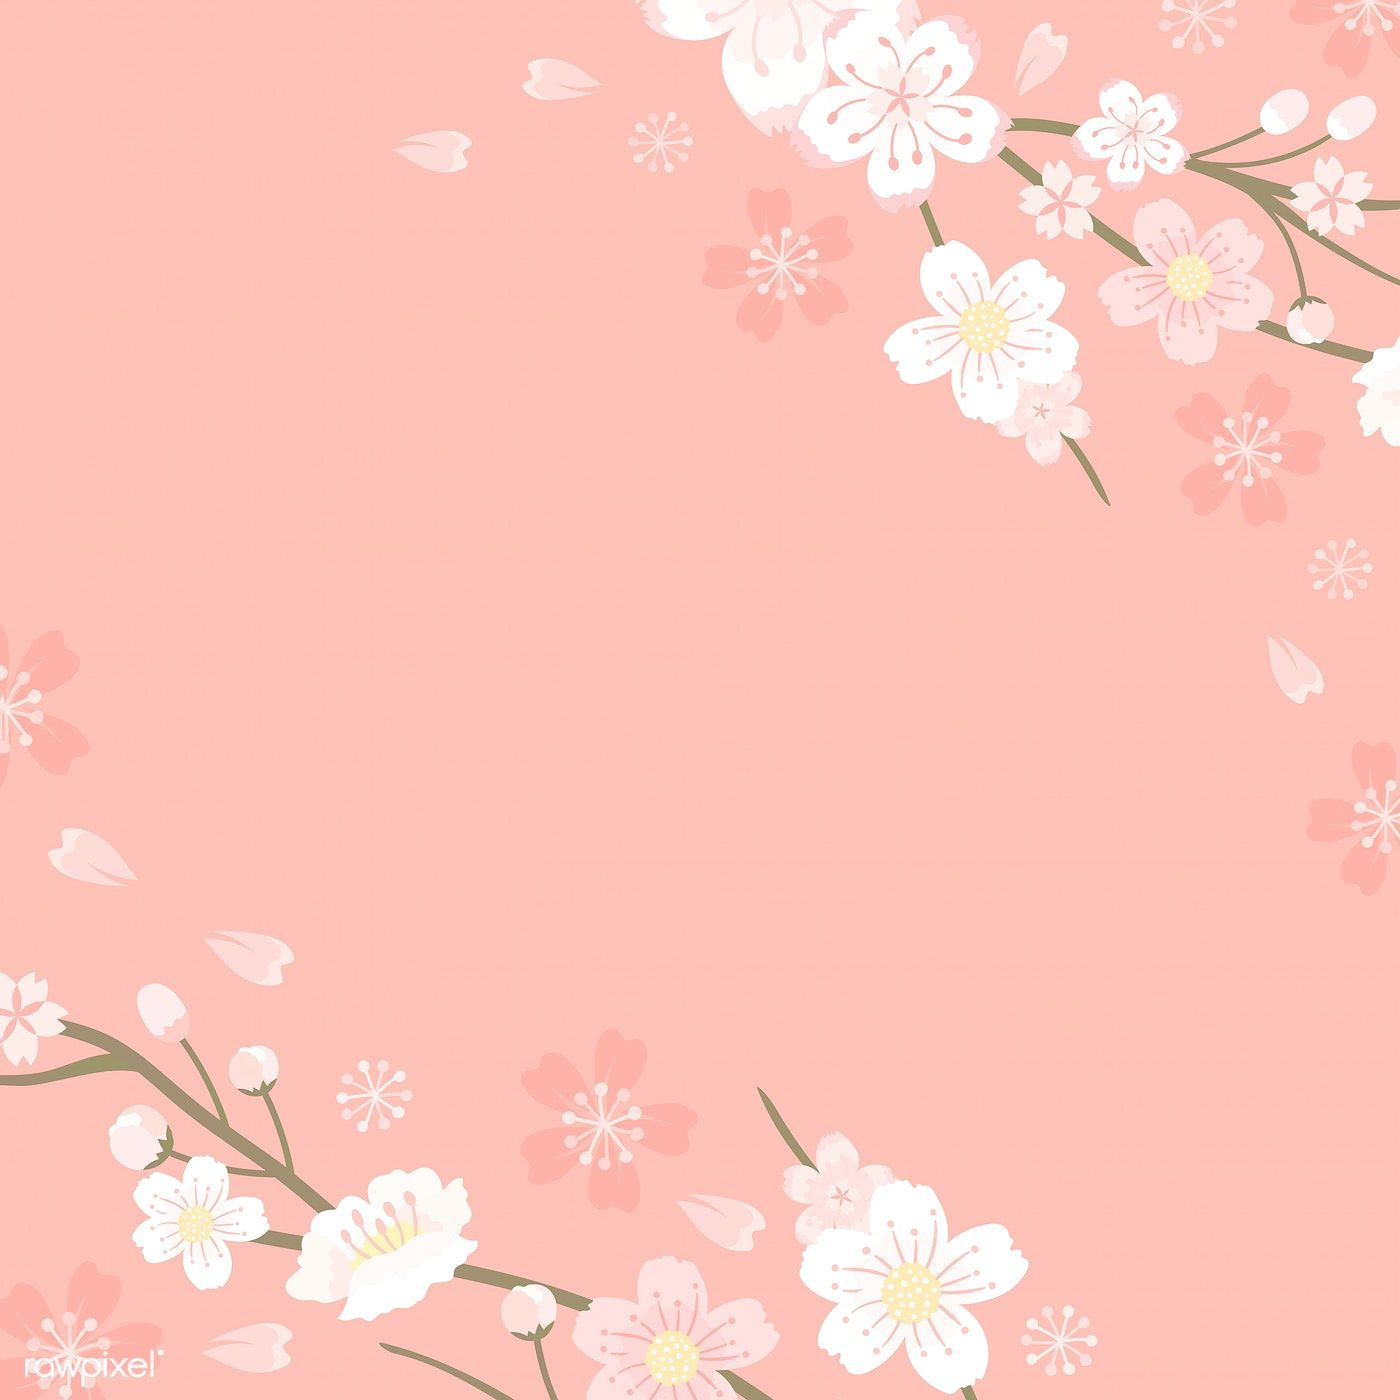 Pink Cherry Blossom Blank Background Vectot Free Image By Rawpixel Com Manotang Anime Cherry Blossom Flower Background Wallpaper Cherry Blossom Background